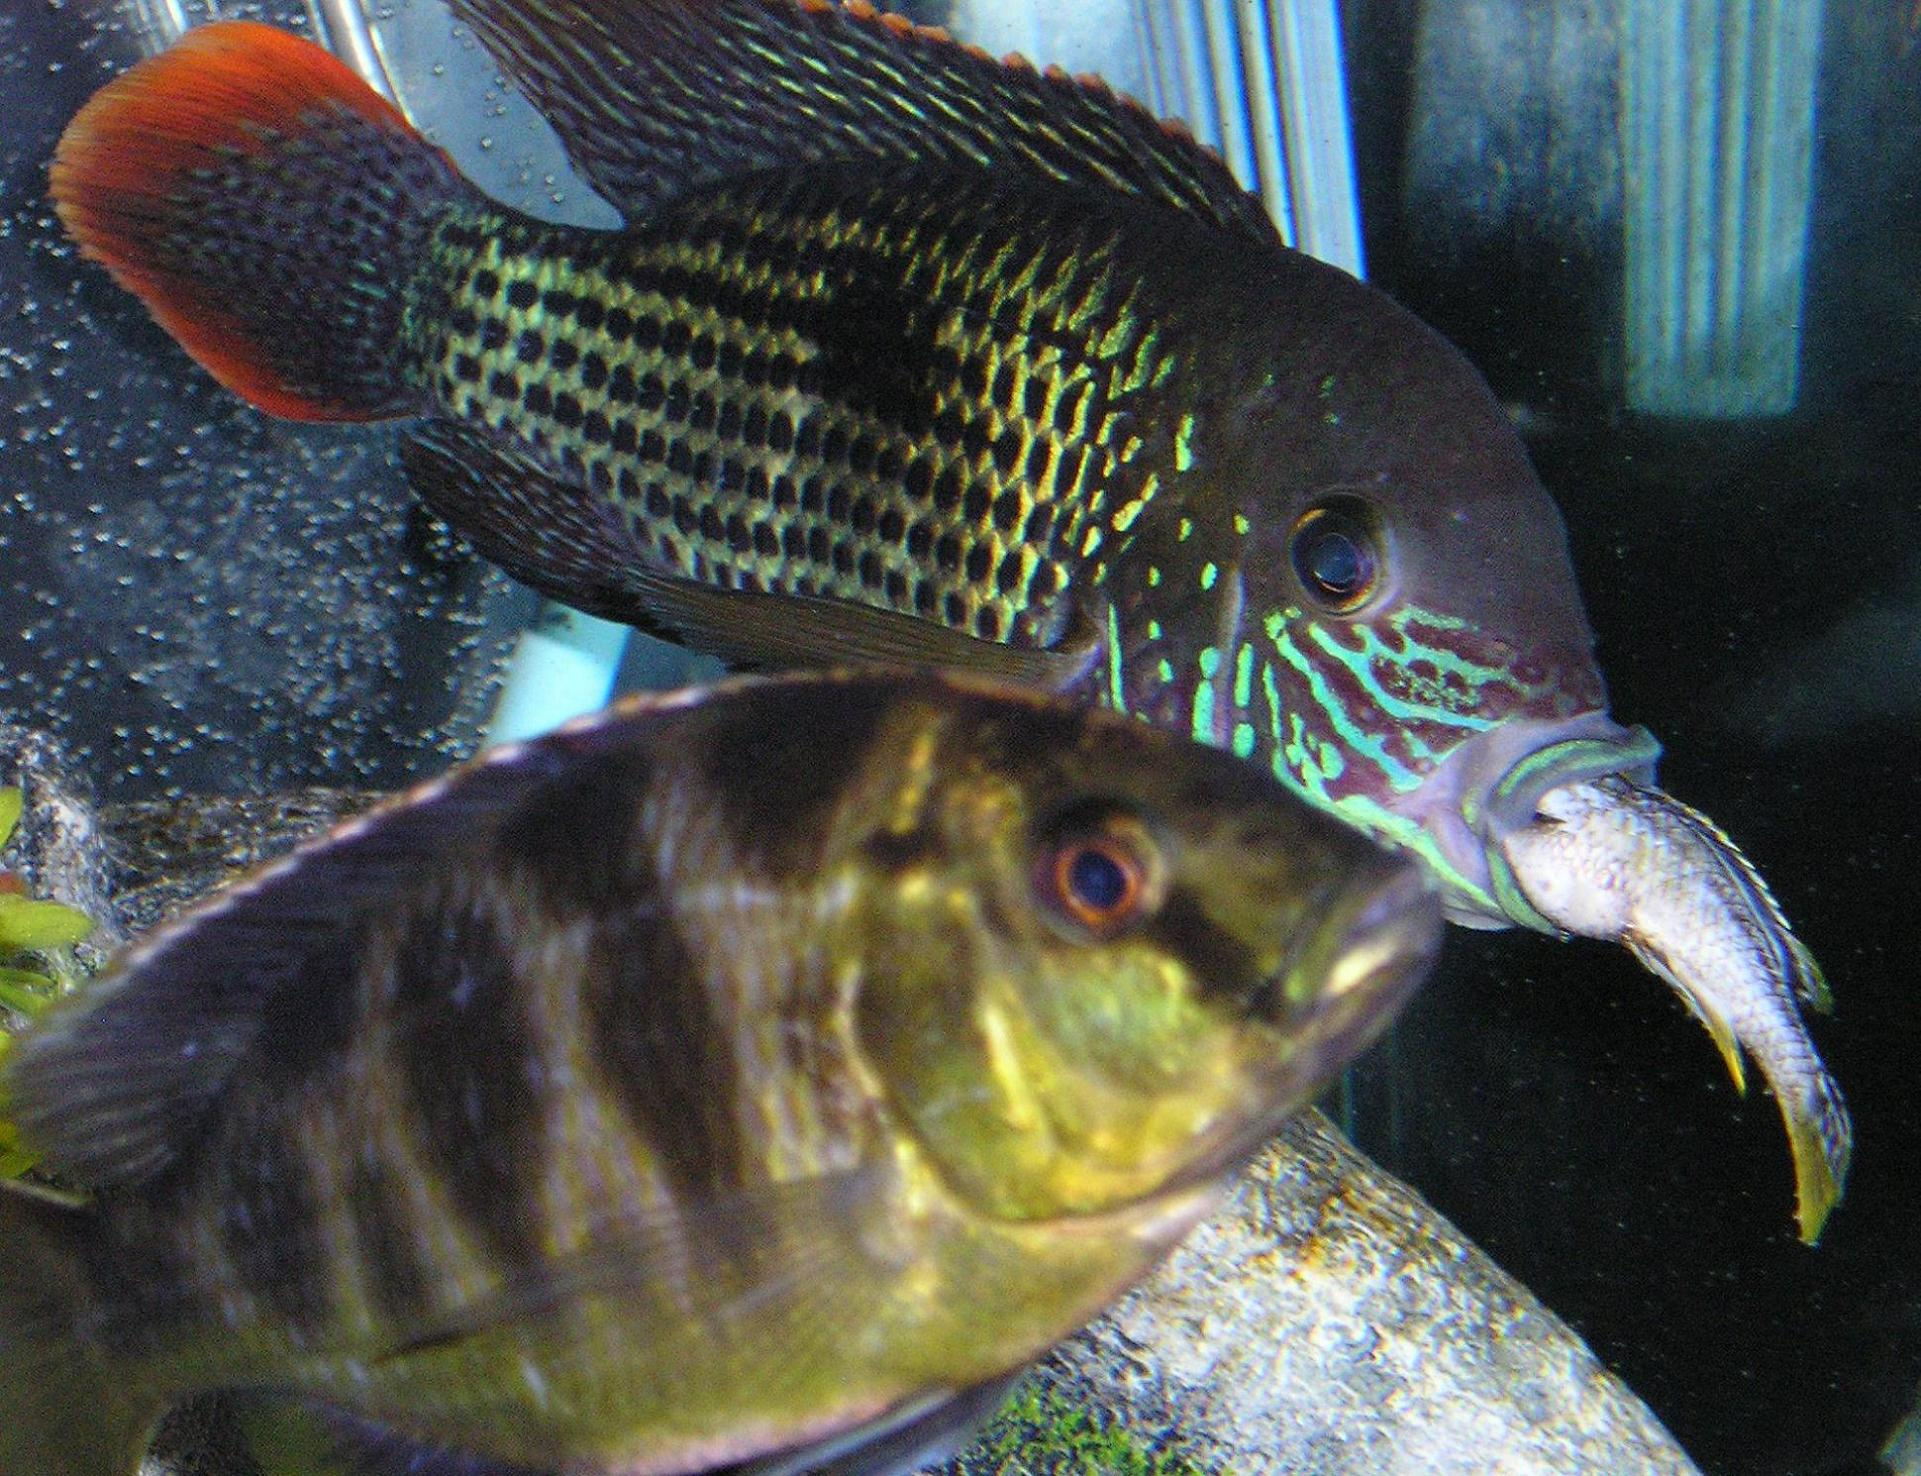 cichlids.com: my Green Terror eating one my cichlids